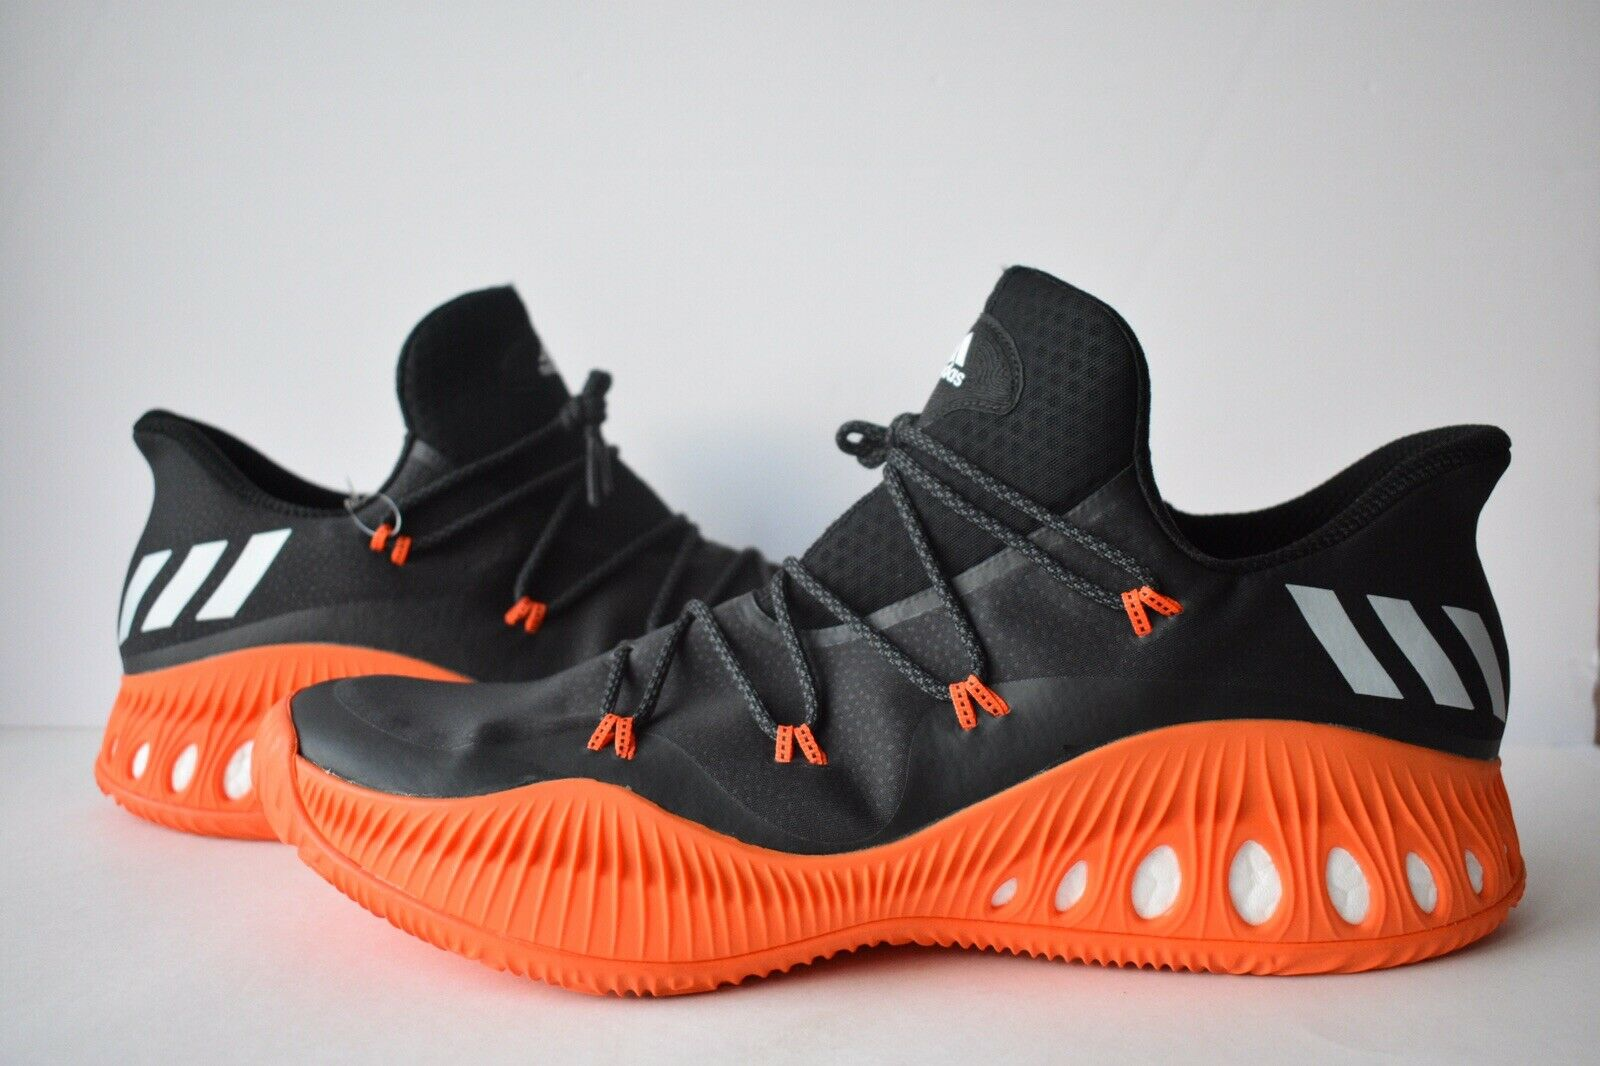 New Adidas Crazy Explosive Low BY4279 Black orange Basketball shoes Men's Size 19